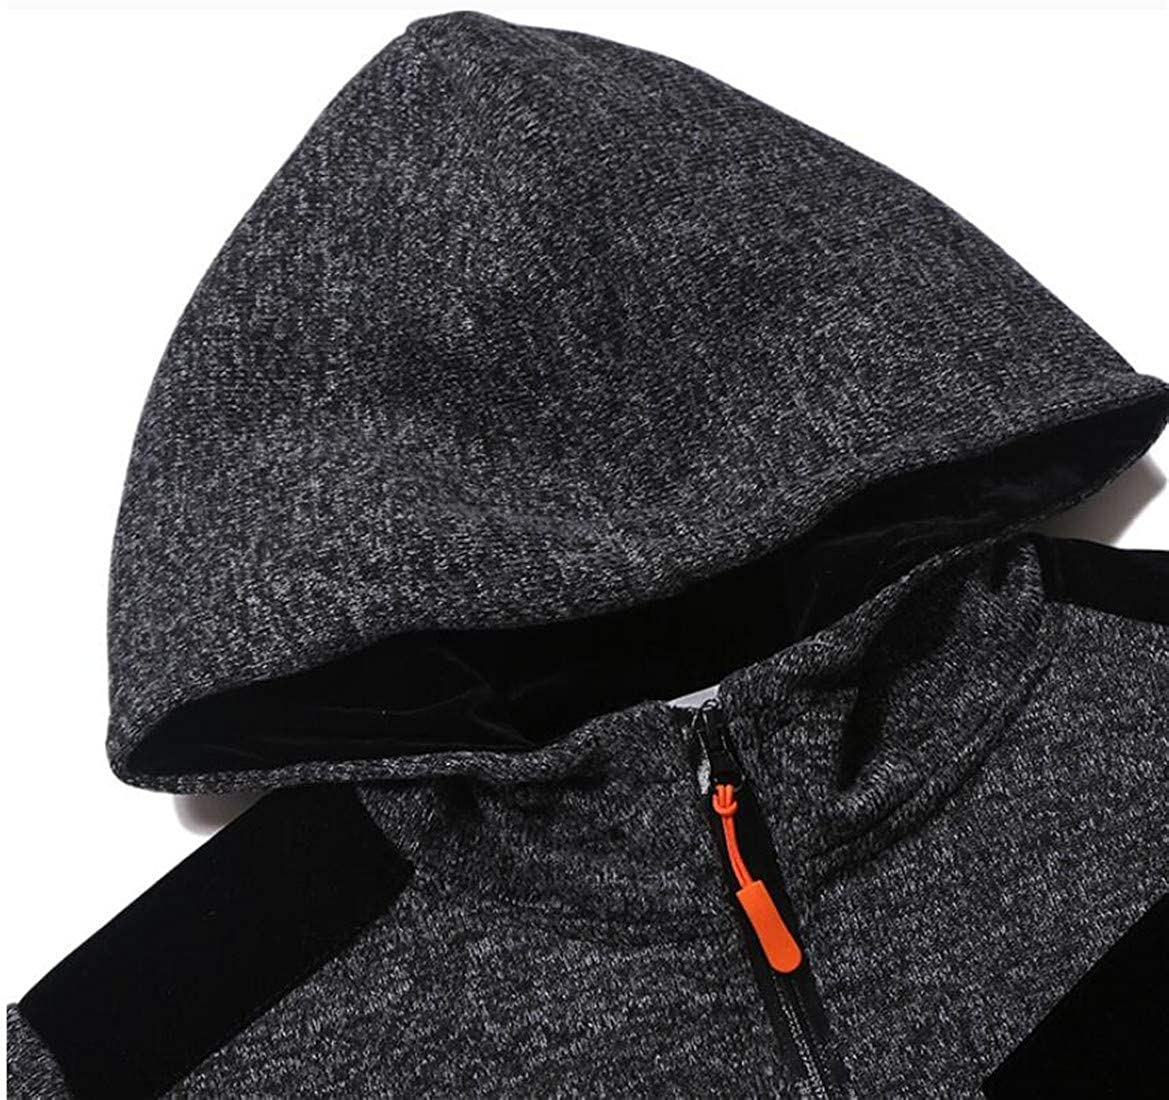 Pivaconis Mens Hooded Classical Contrast Coat Knitted Slim Fit Spliced Sweatshirts